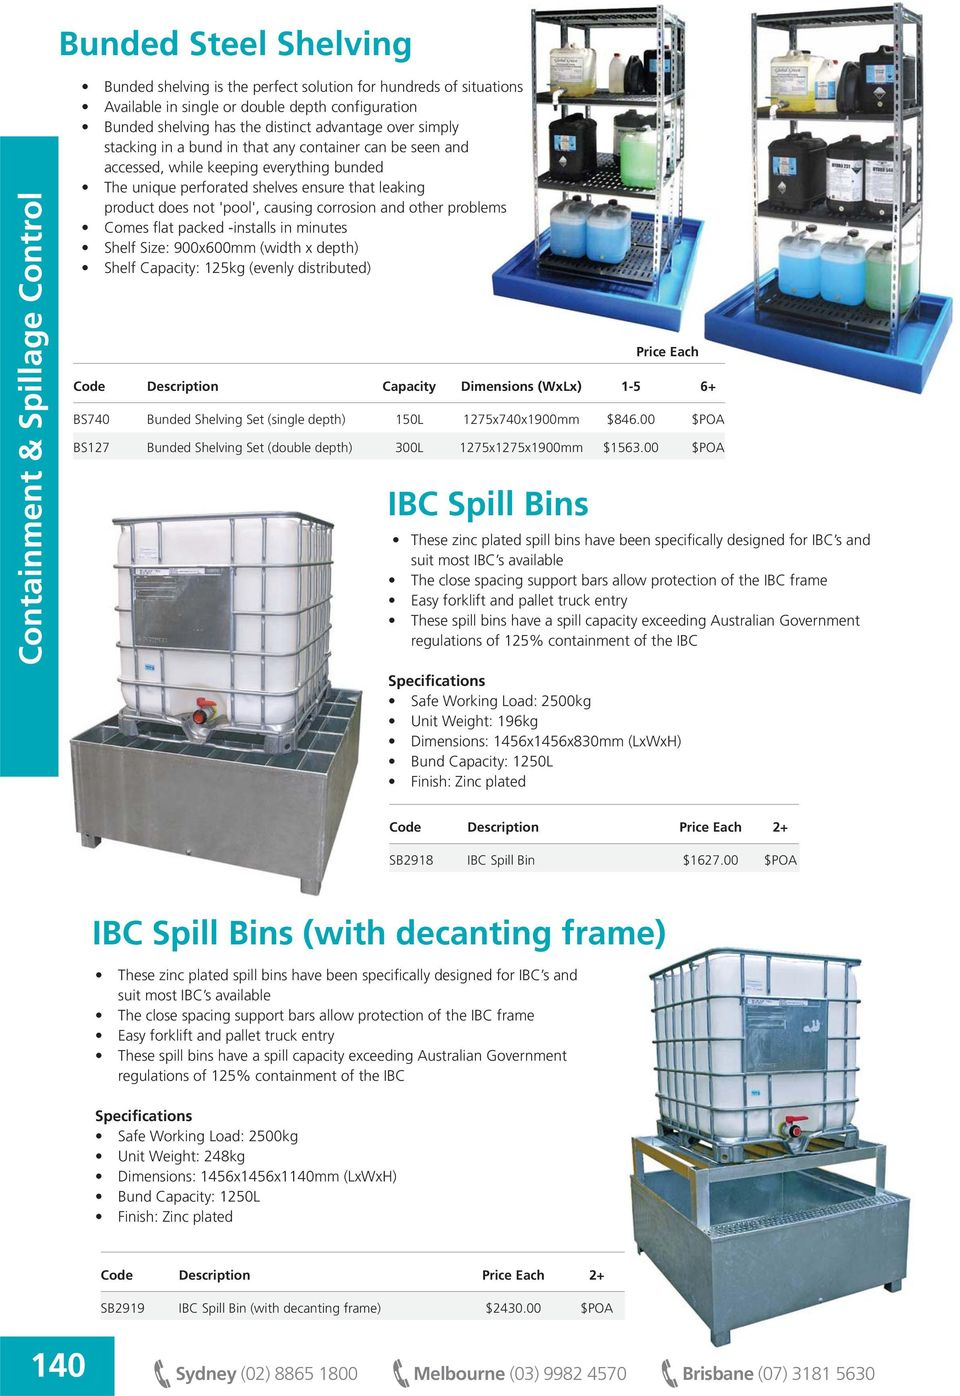 other problems Comes flat packed -installs in minutes Shelf Size: 900x600mm (width x depth) Shelf Capacity: 125kg (evenly distributed) IBC Spill Bins Code Description Capacity Dimensions (WxLx) 1 5